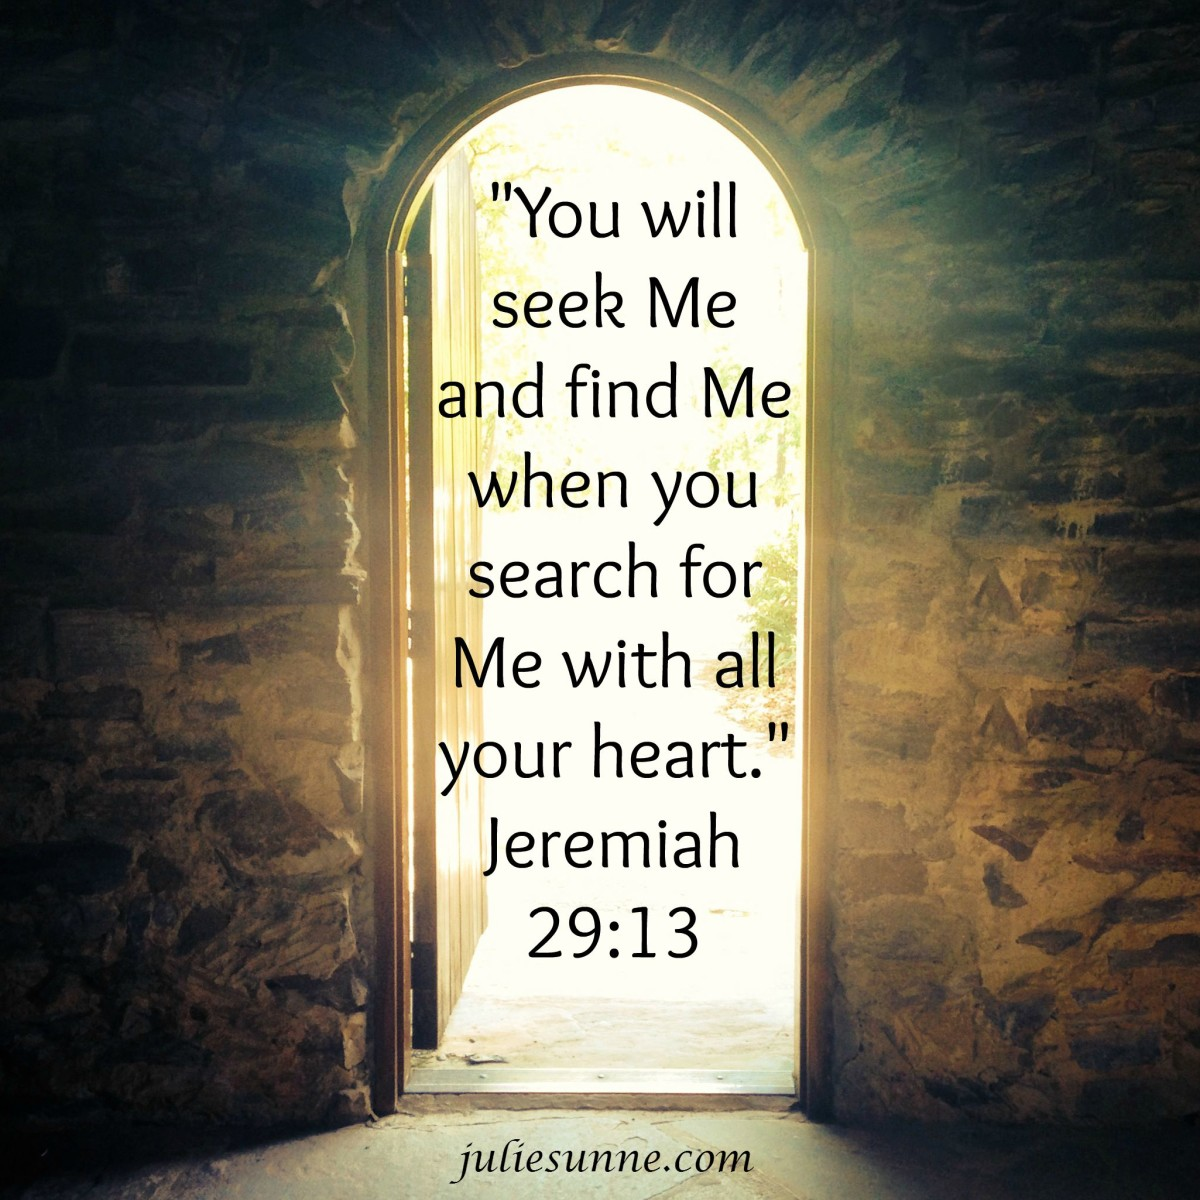 search for Me